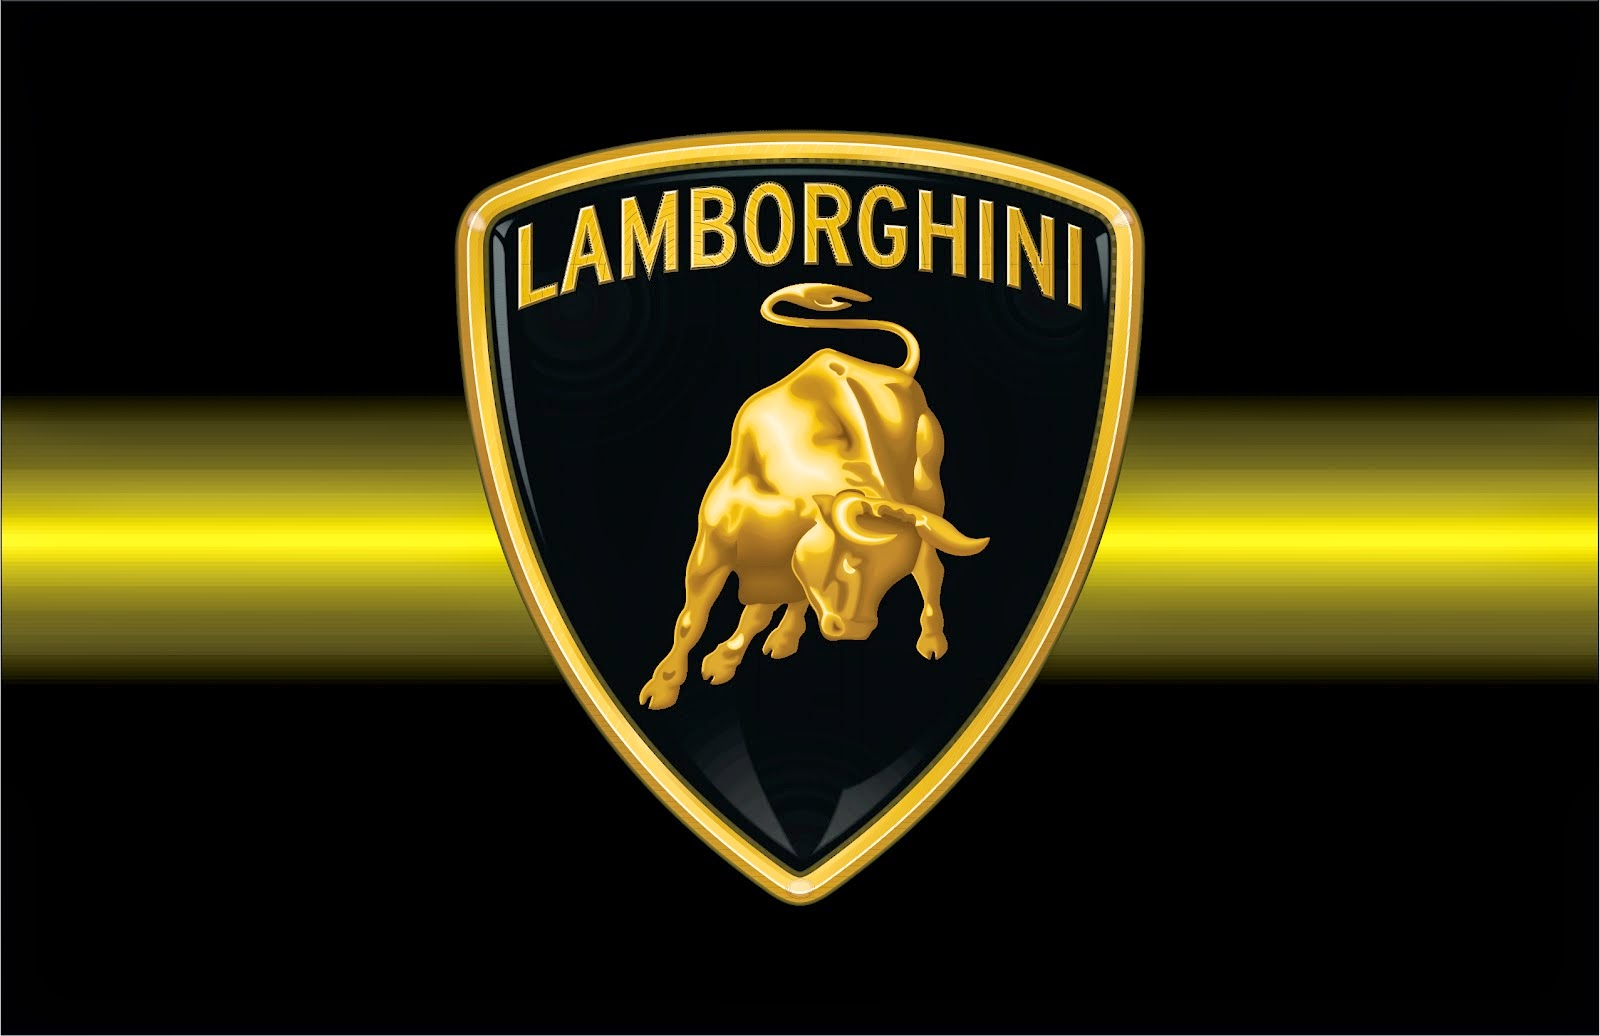 Lamborghini Logo Black Wallpaper Free Download